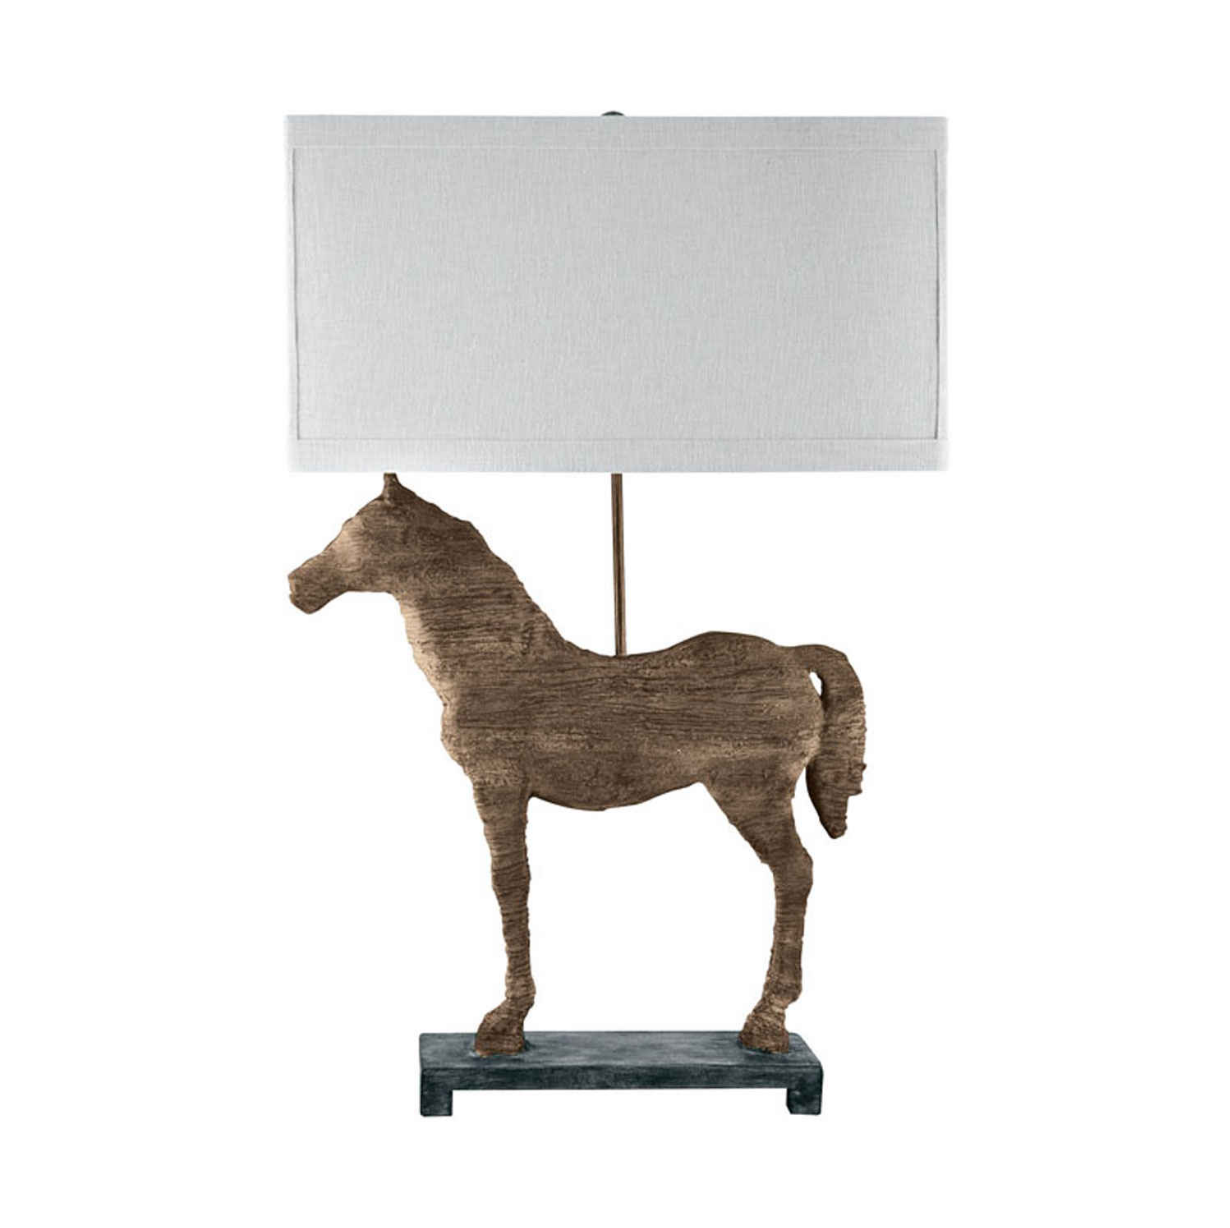 I absolutely LOVE this  Lightworks Natural Table Lamp and the natural, earthy feel it would bring into a space. It's the perfect blend between a rustic sculpture and a source of light.